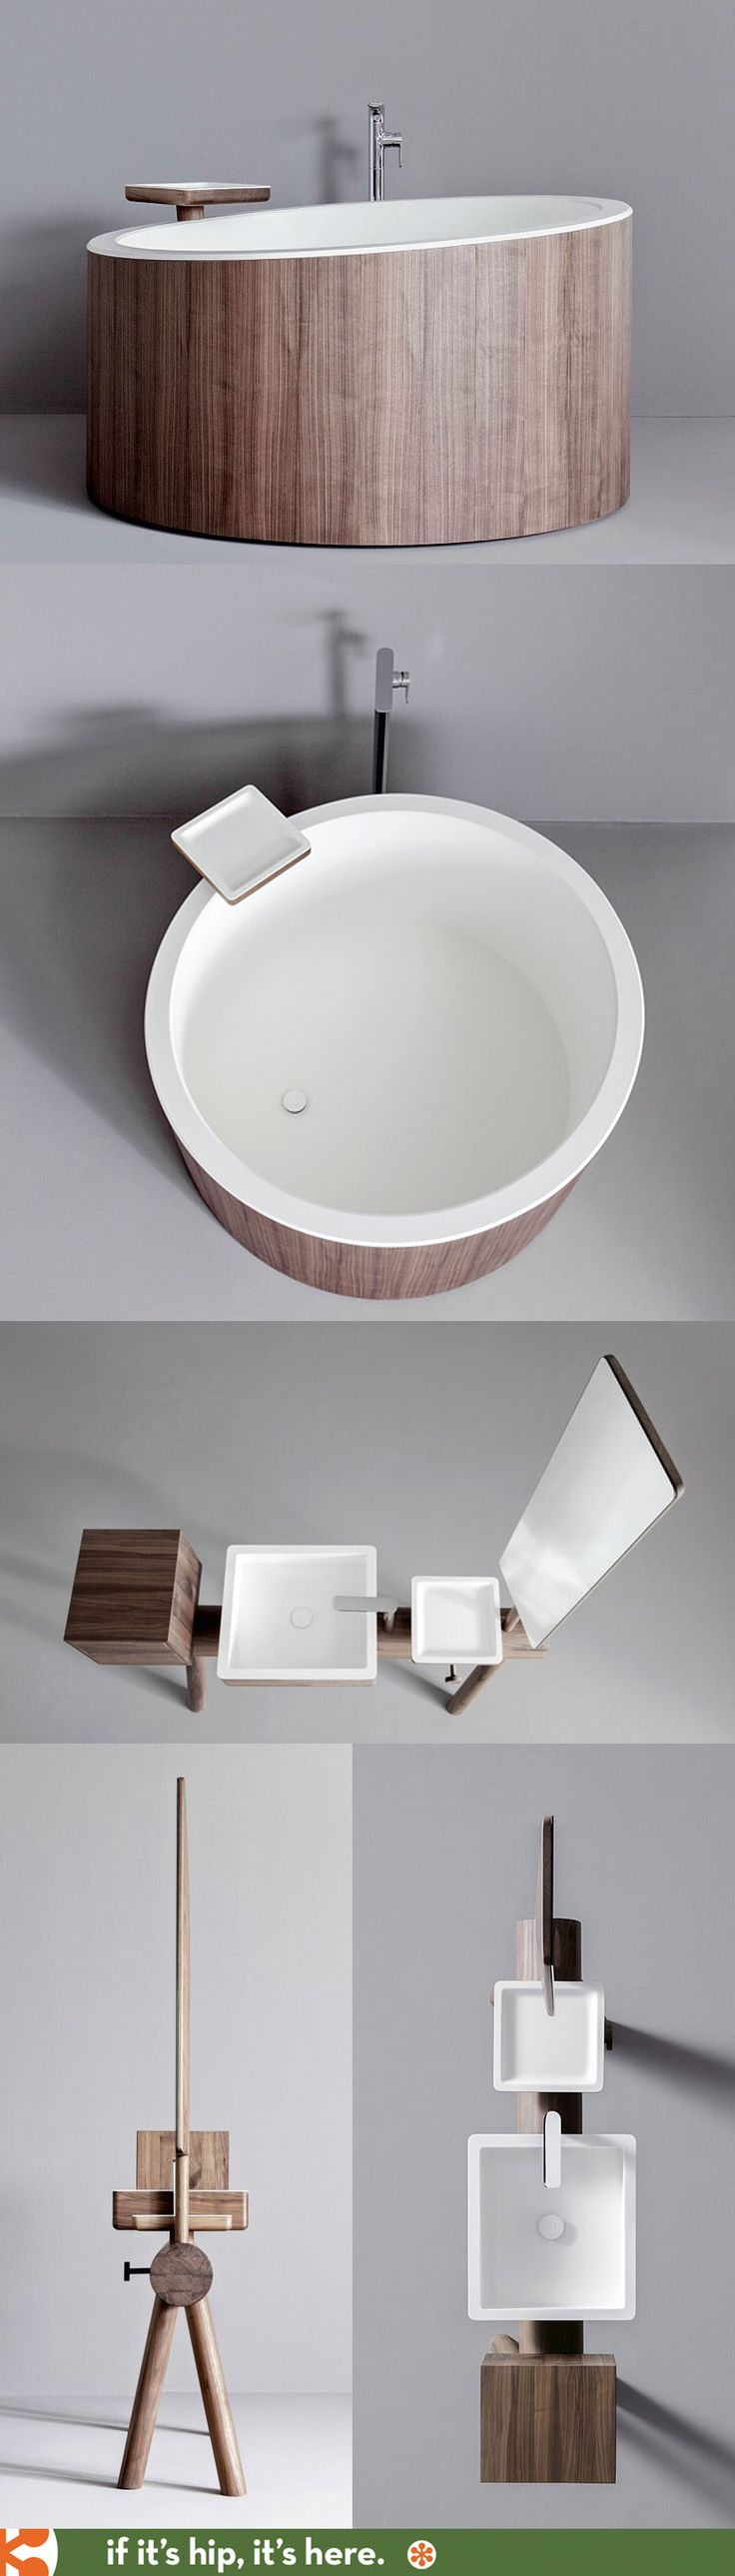 The DRESSAGE tub and Vanity by GRAFF are almost too pretty for the bathroom.